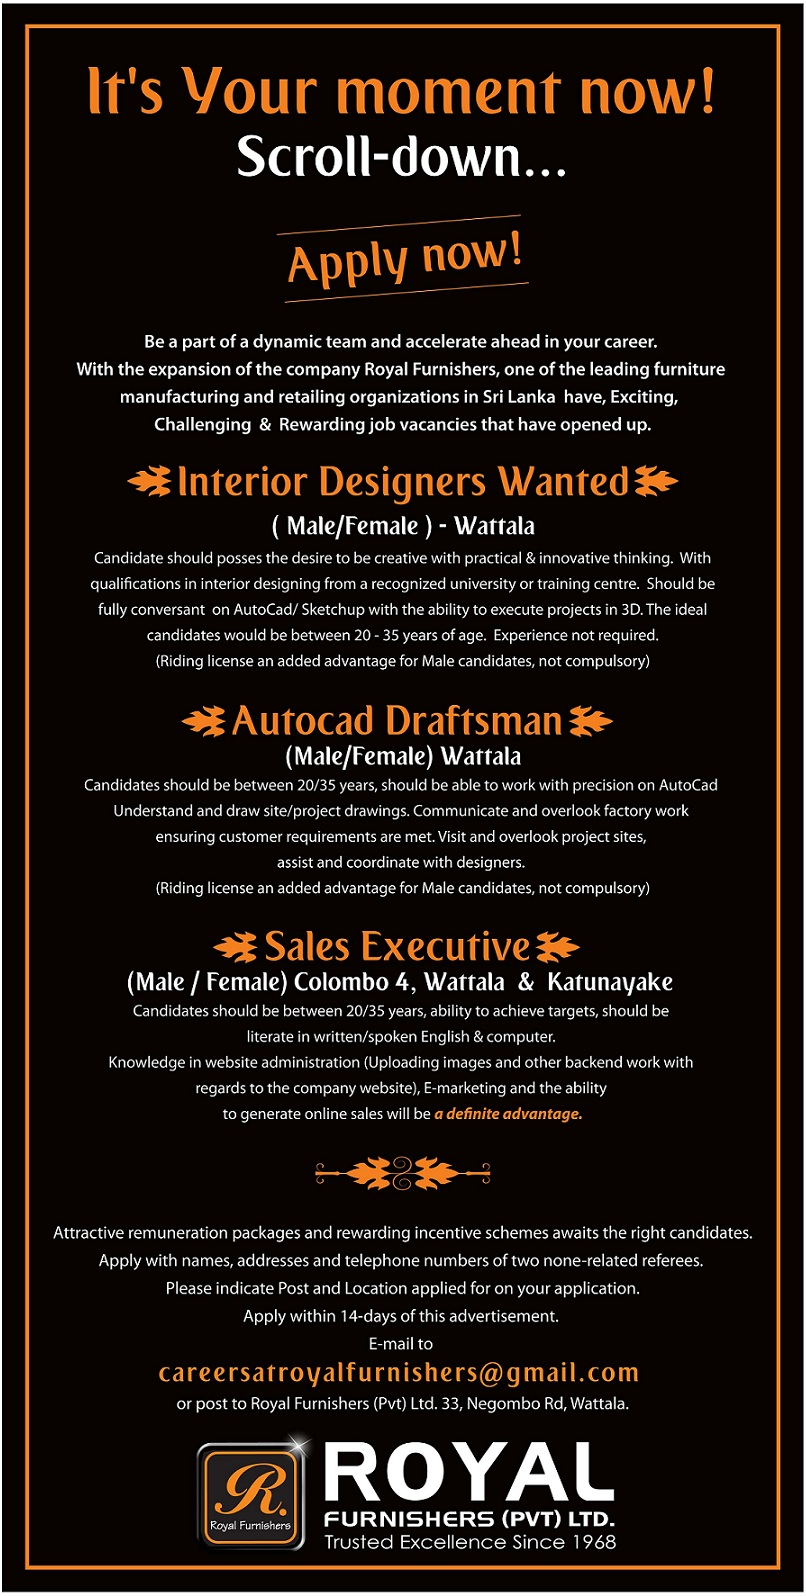 Royal Furnishers Pvt Ltd Is Looking For Interior Designers And AutoCAD DraftsmanIdeal Candidates With Following Qualifications Can Apply